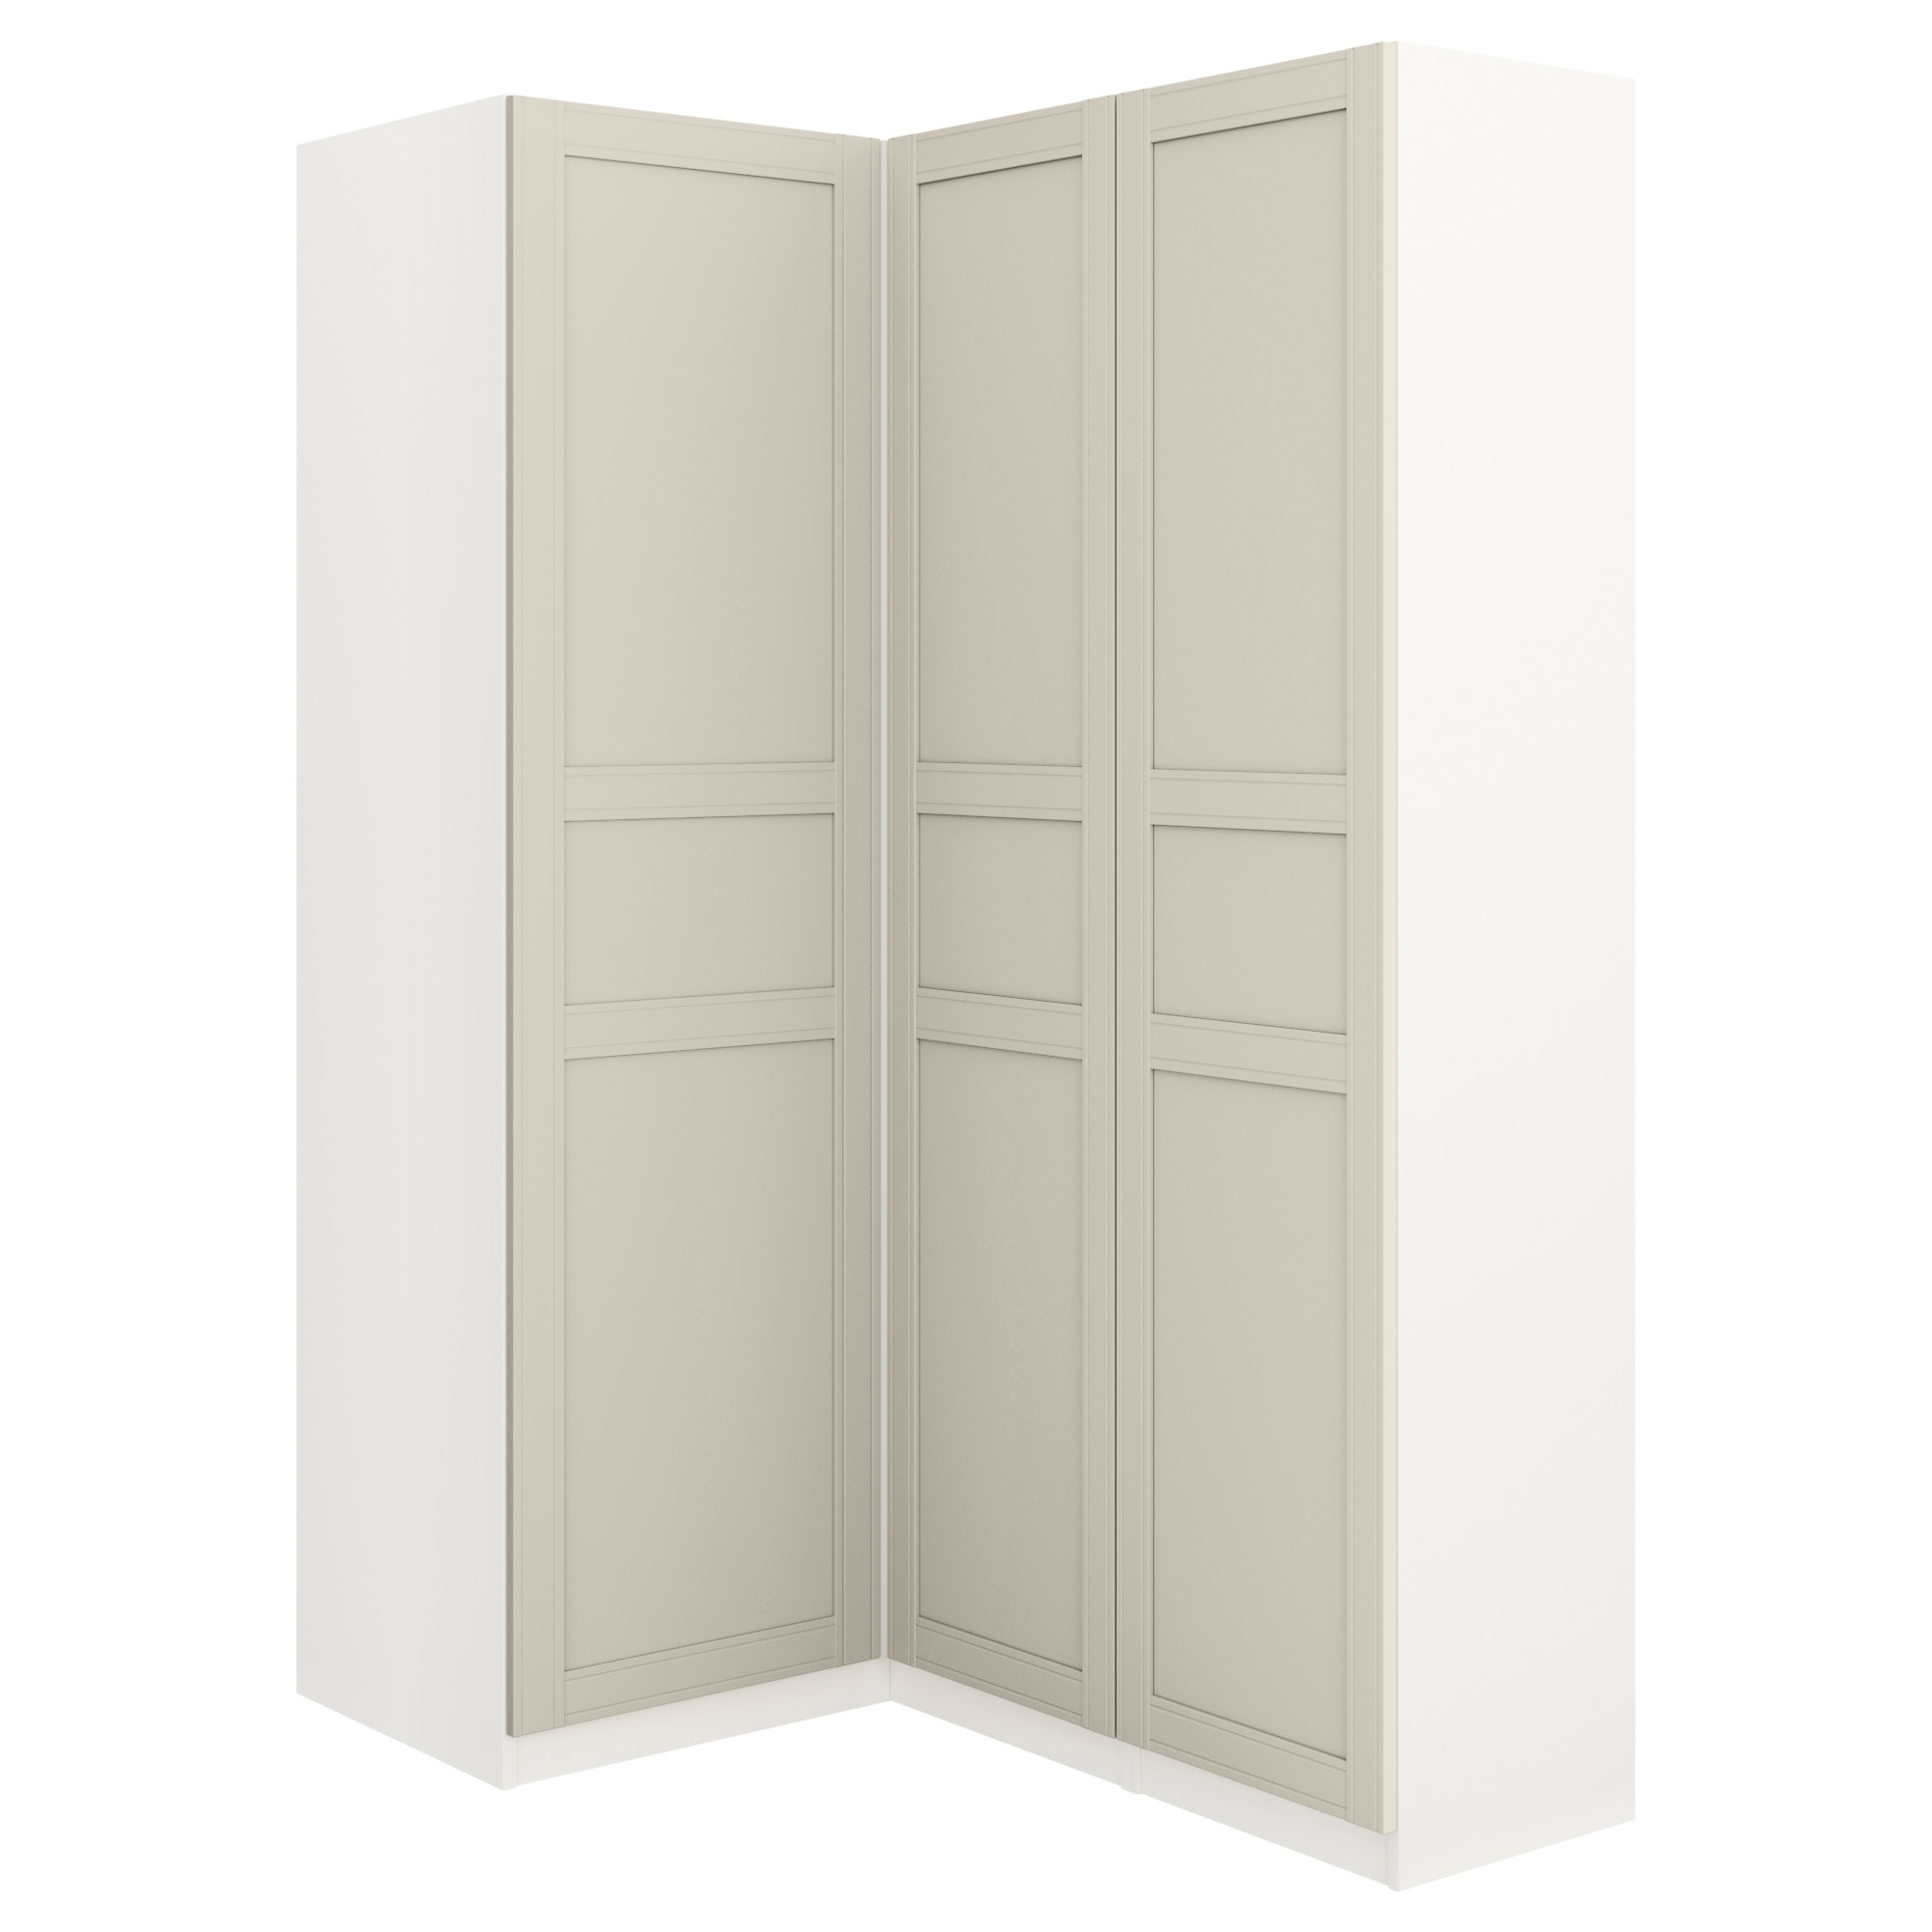 Pax Corner Wardrobe White/flisberget Light Beige 160/88x201 Cm – Ikea With Trendy Cheap Corner Wardrobes (View 9 of 15)